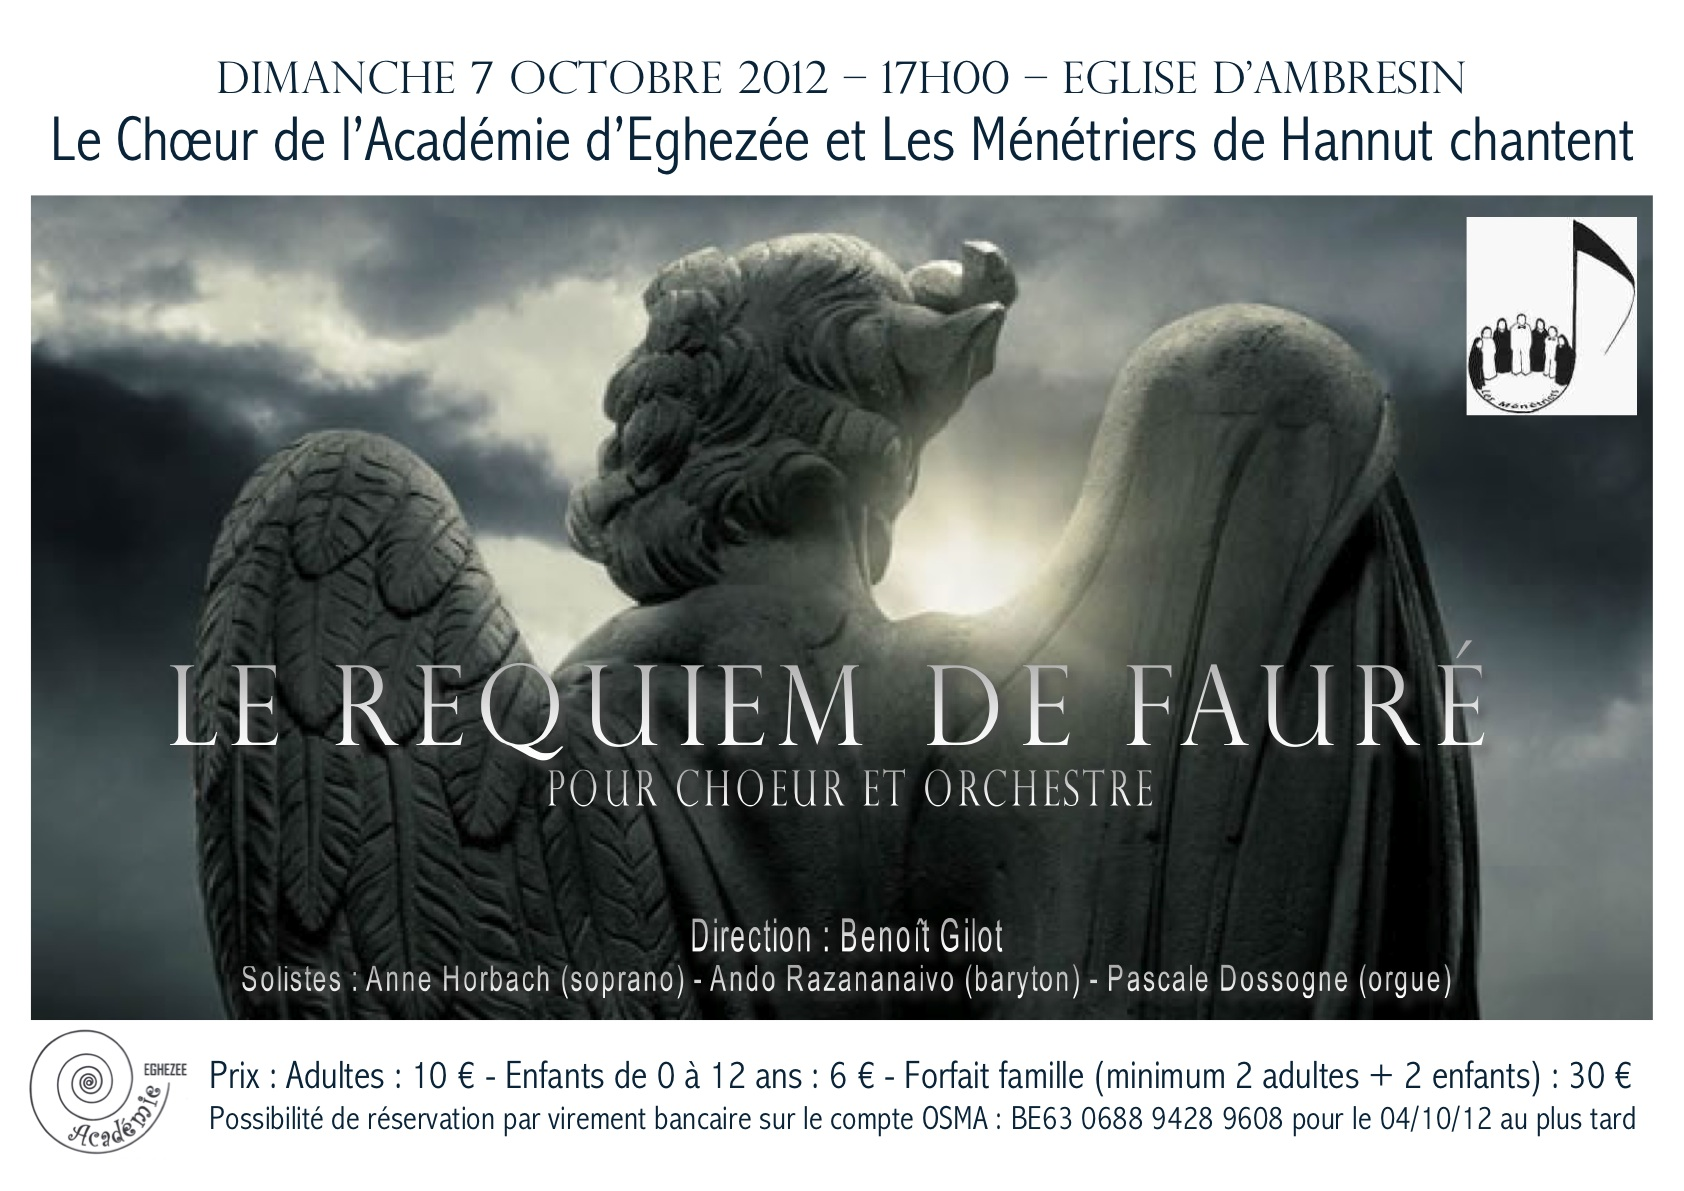 2012-10-07 - Affiche du concert du Requiem Faur  l'glise Saint-Martin d'Ambresin